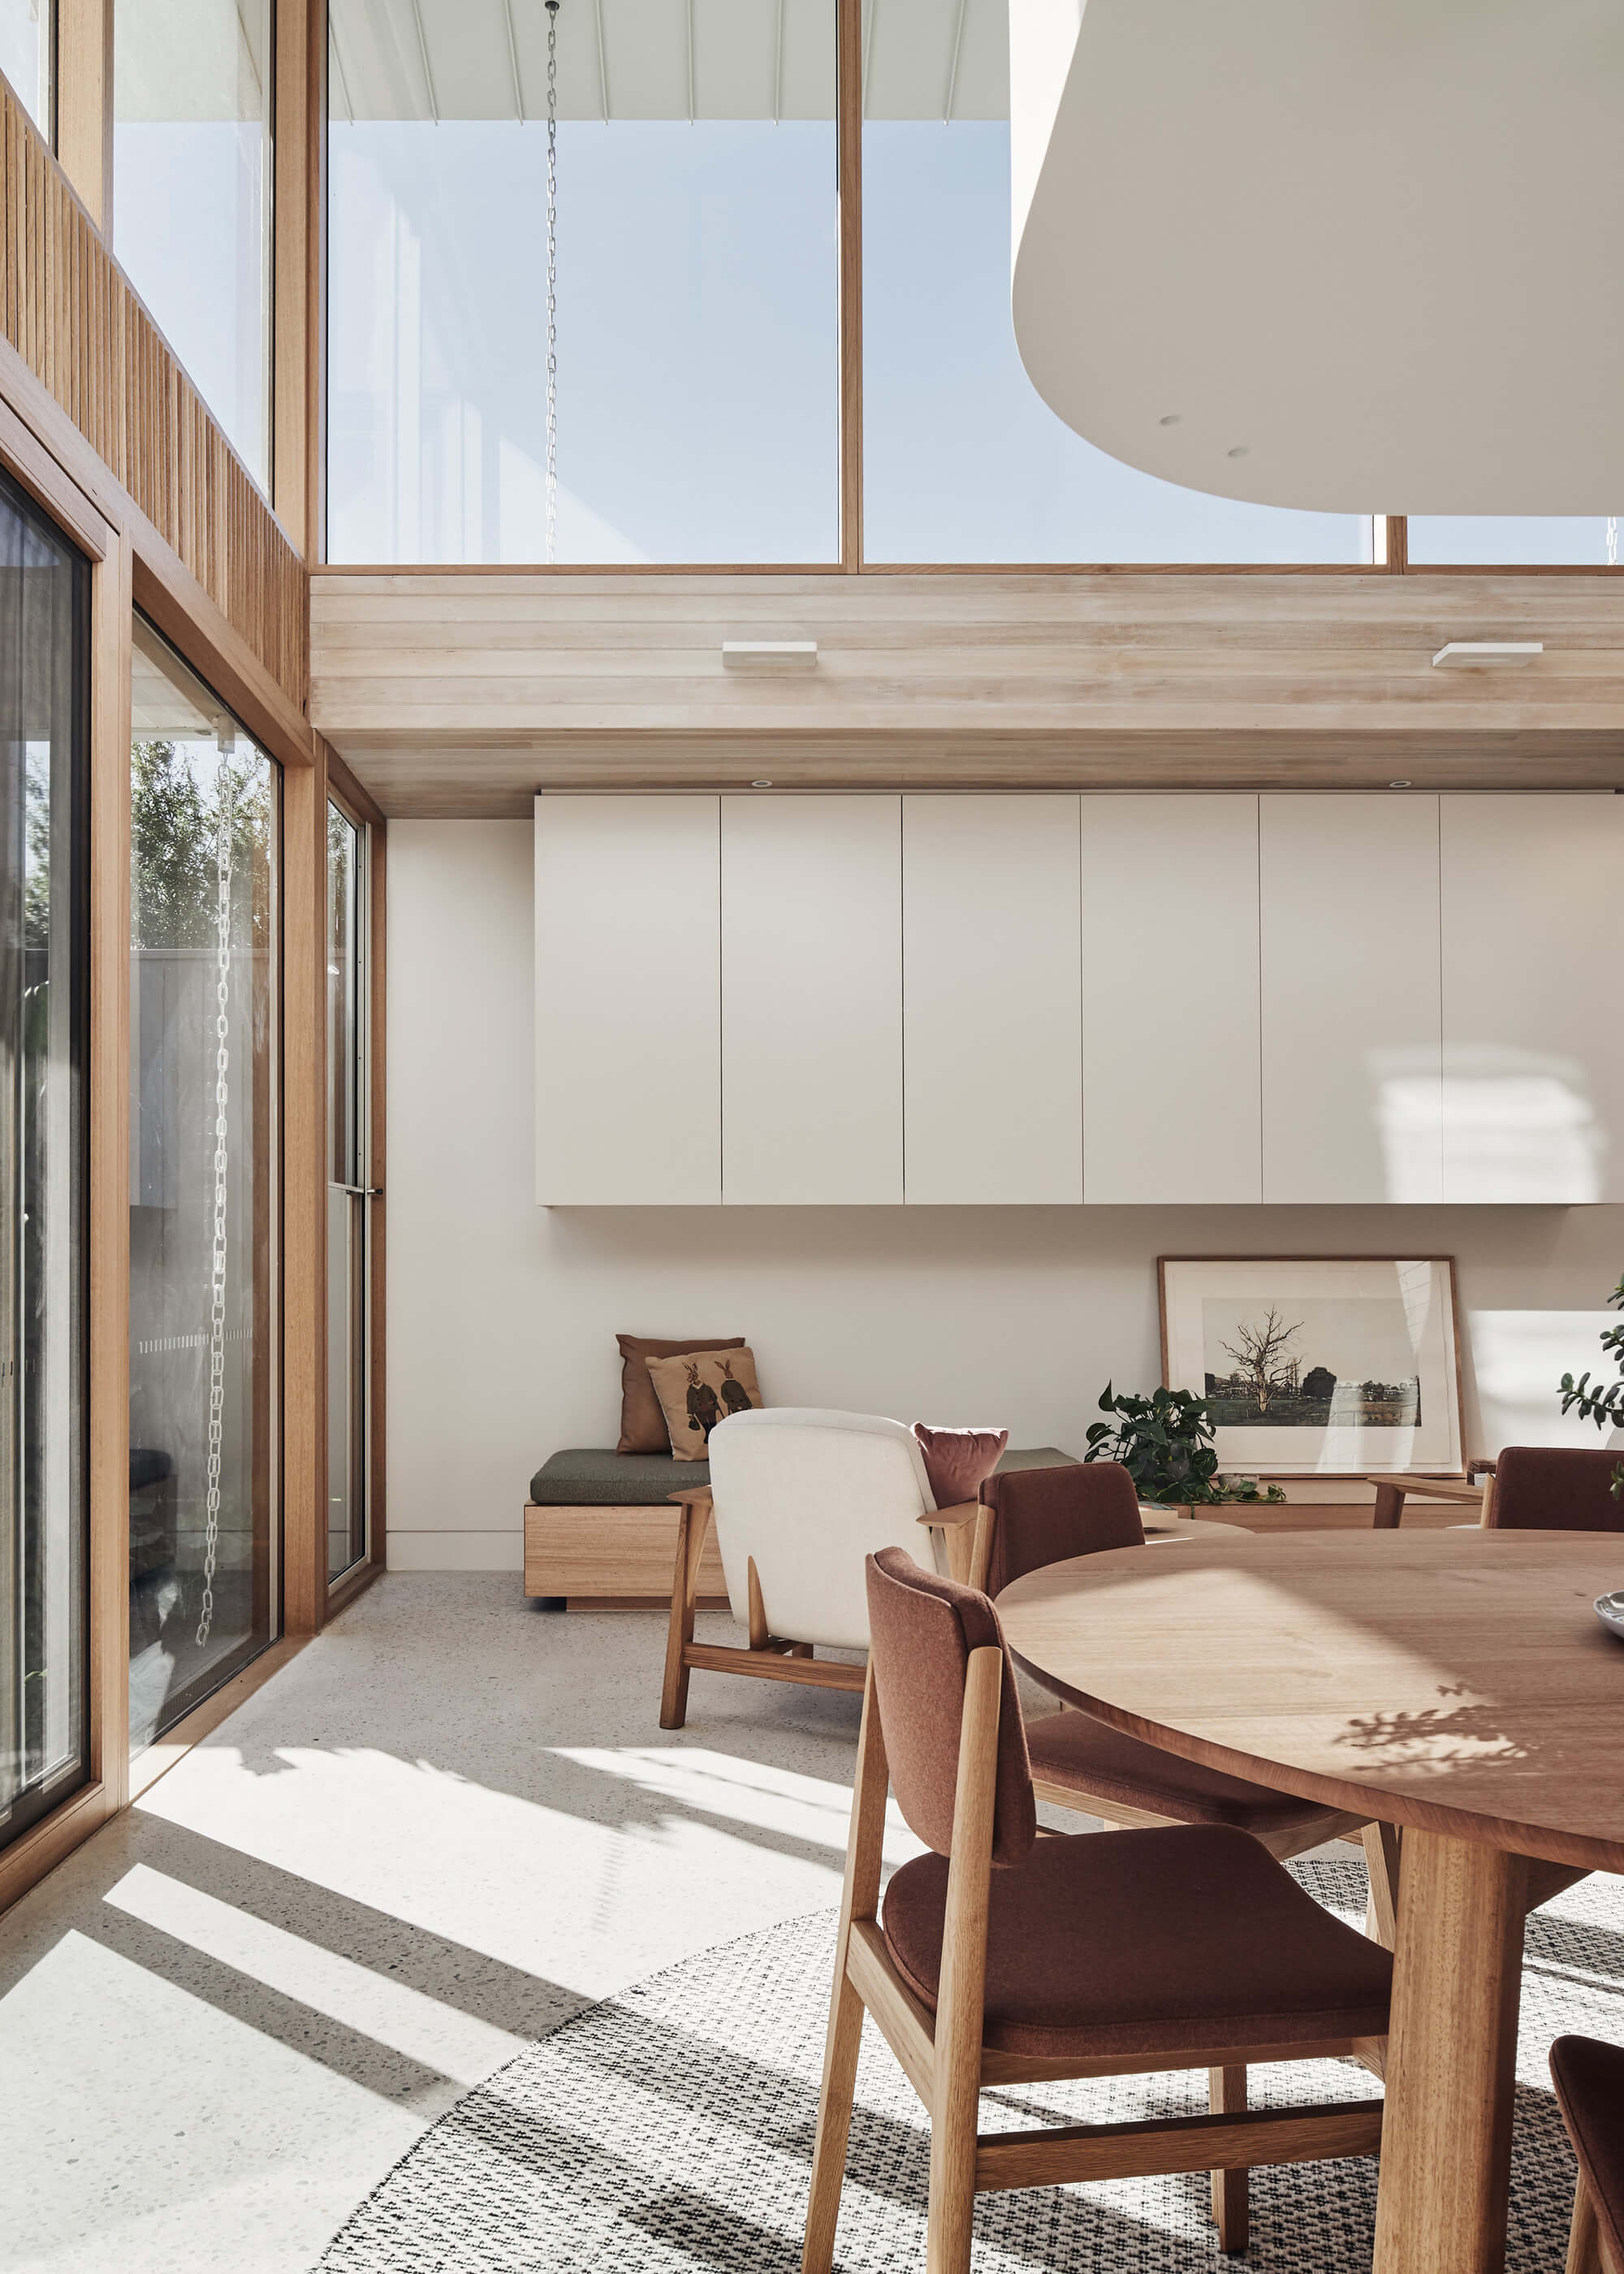 Lantern House by Timmins + Whyte Architects